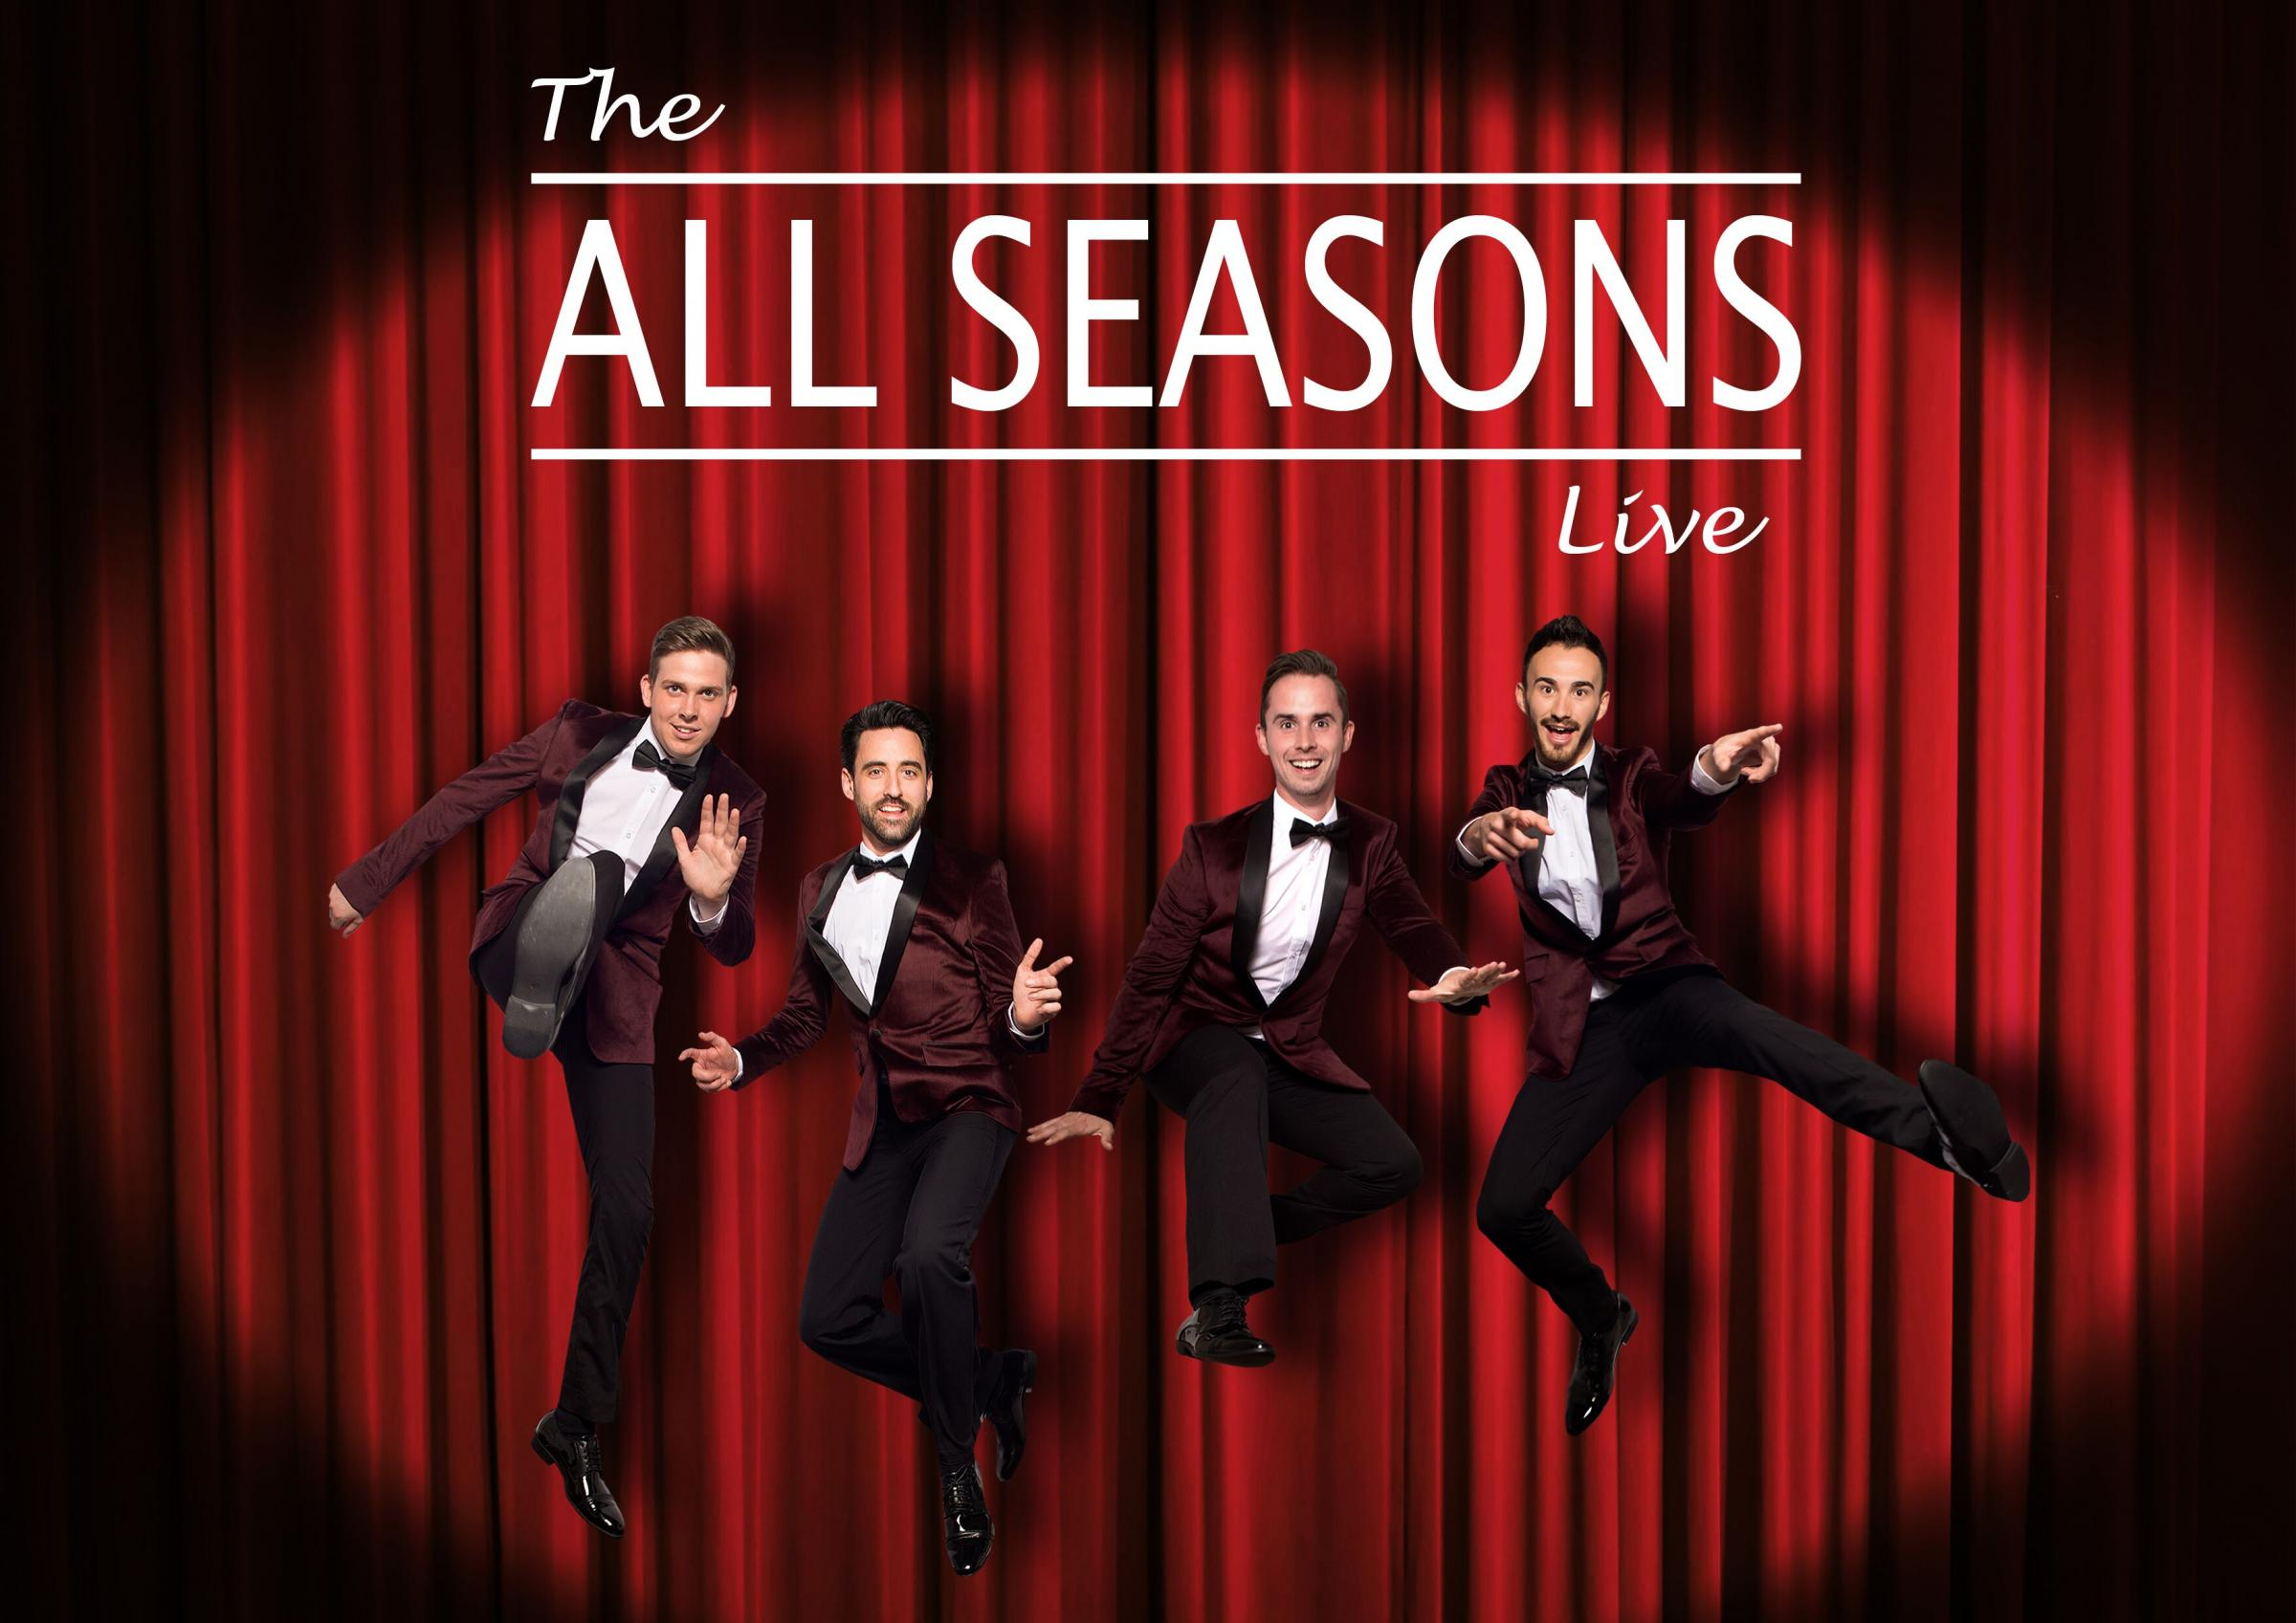 All seasons, Jersey Boys Tribute & Dinner